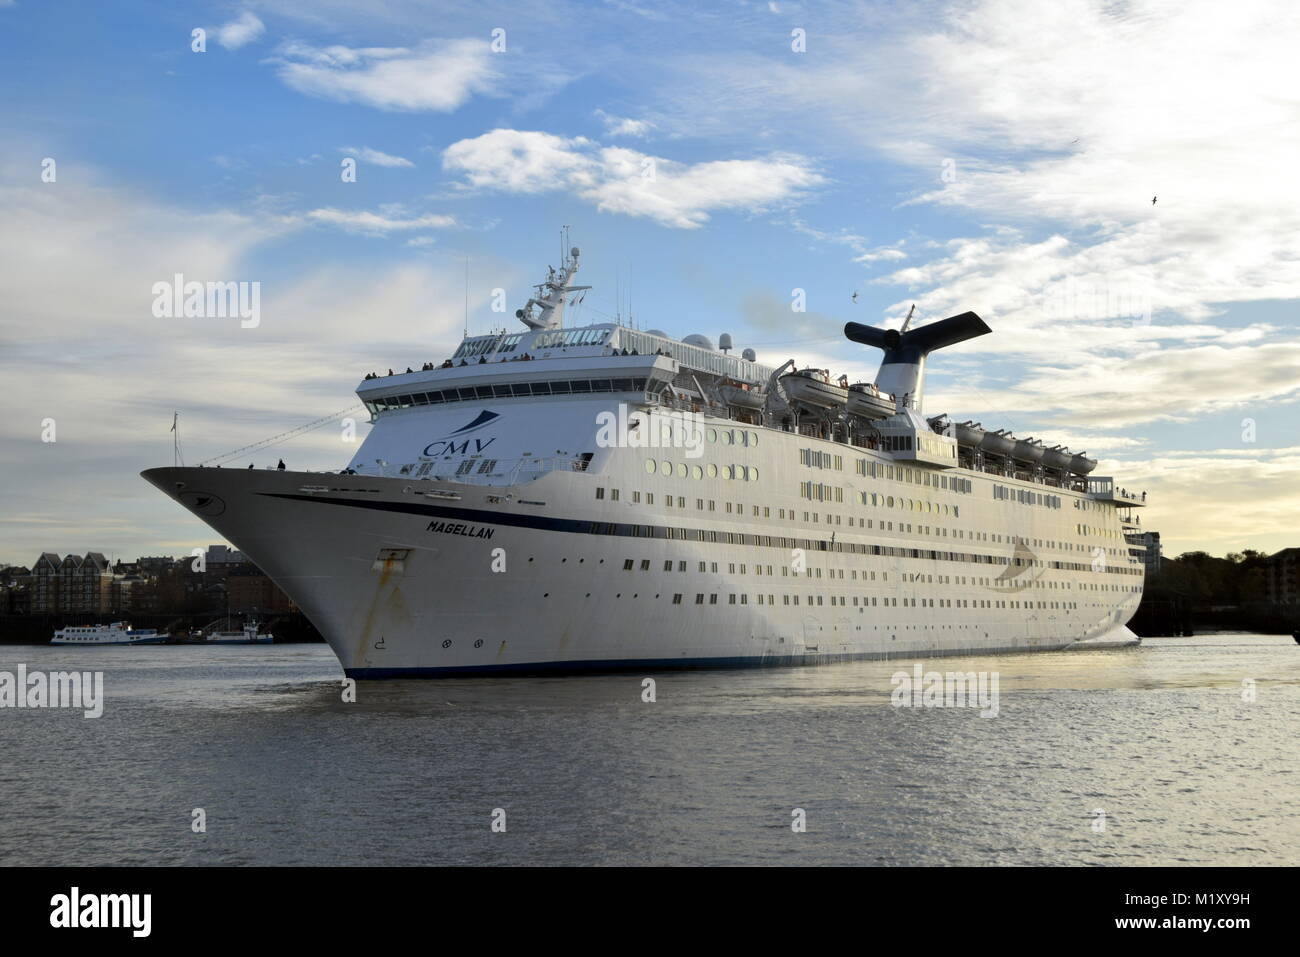 CMV Cruise And Maritime Voyages Cruise Ship Magellen Arrives at London Tilbury Cruise Terminal On The River Thames. Stock Photo